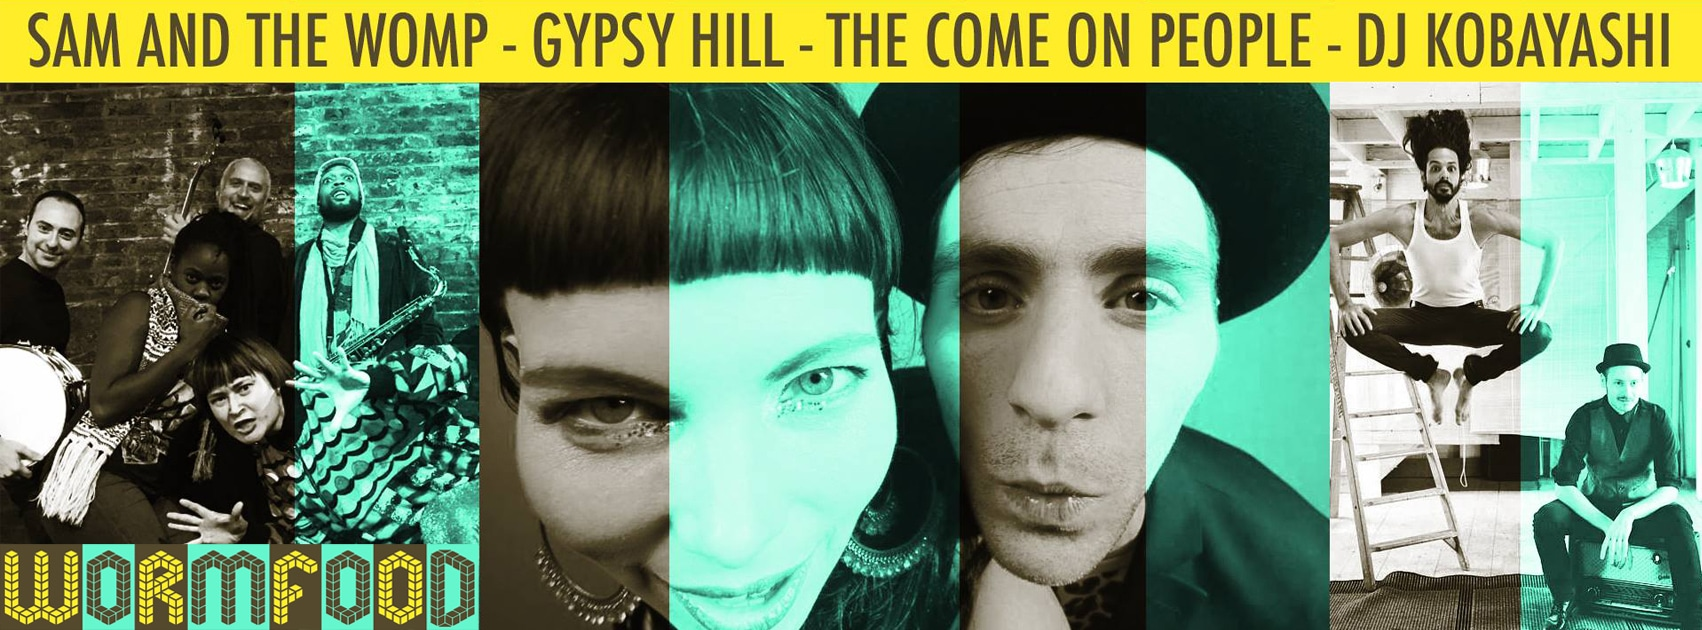 Sam and The Womp - Gypsy Hill - The Come On People - DJ Kobayashi 4